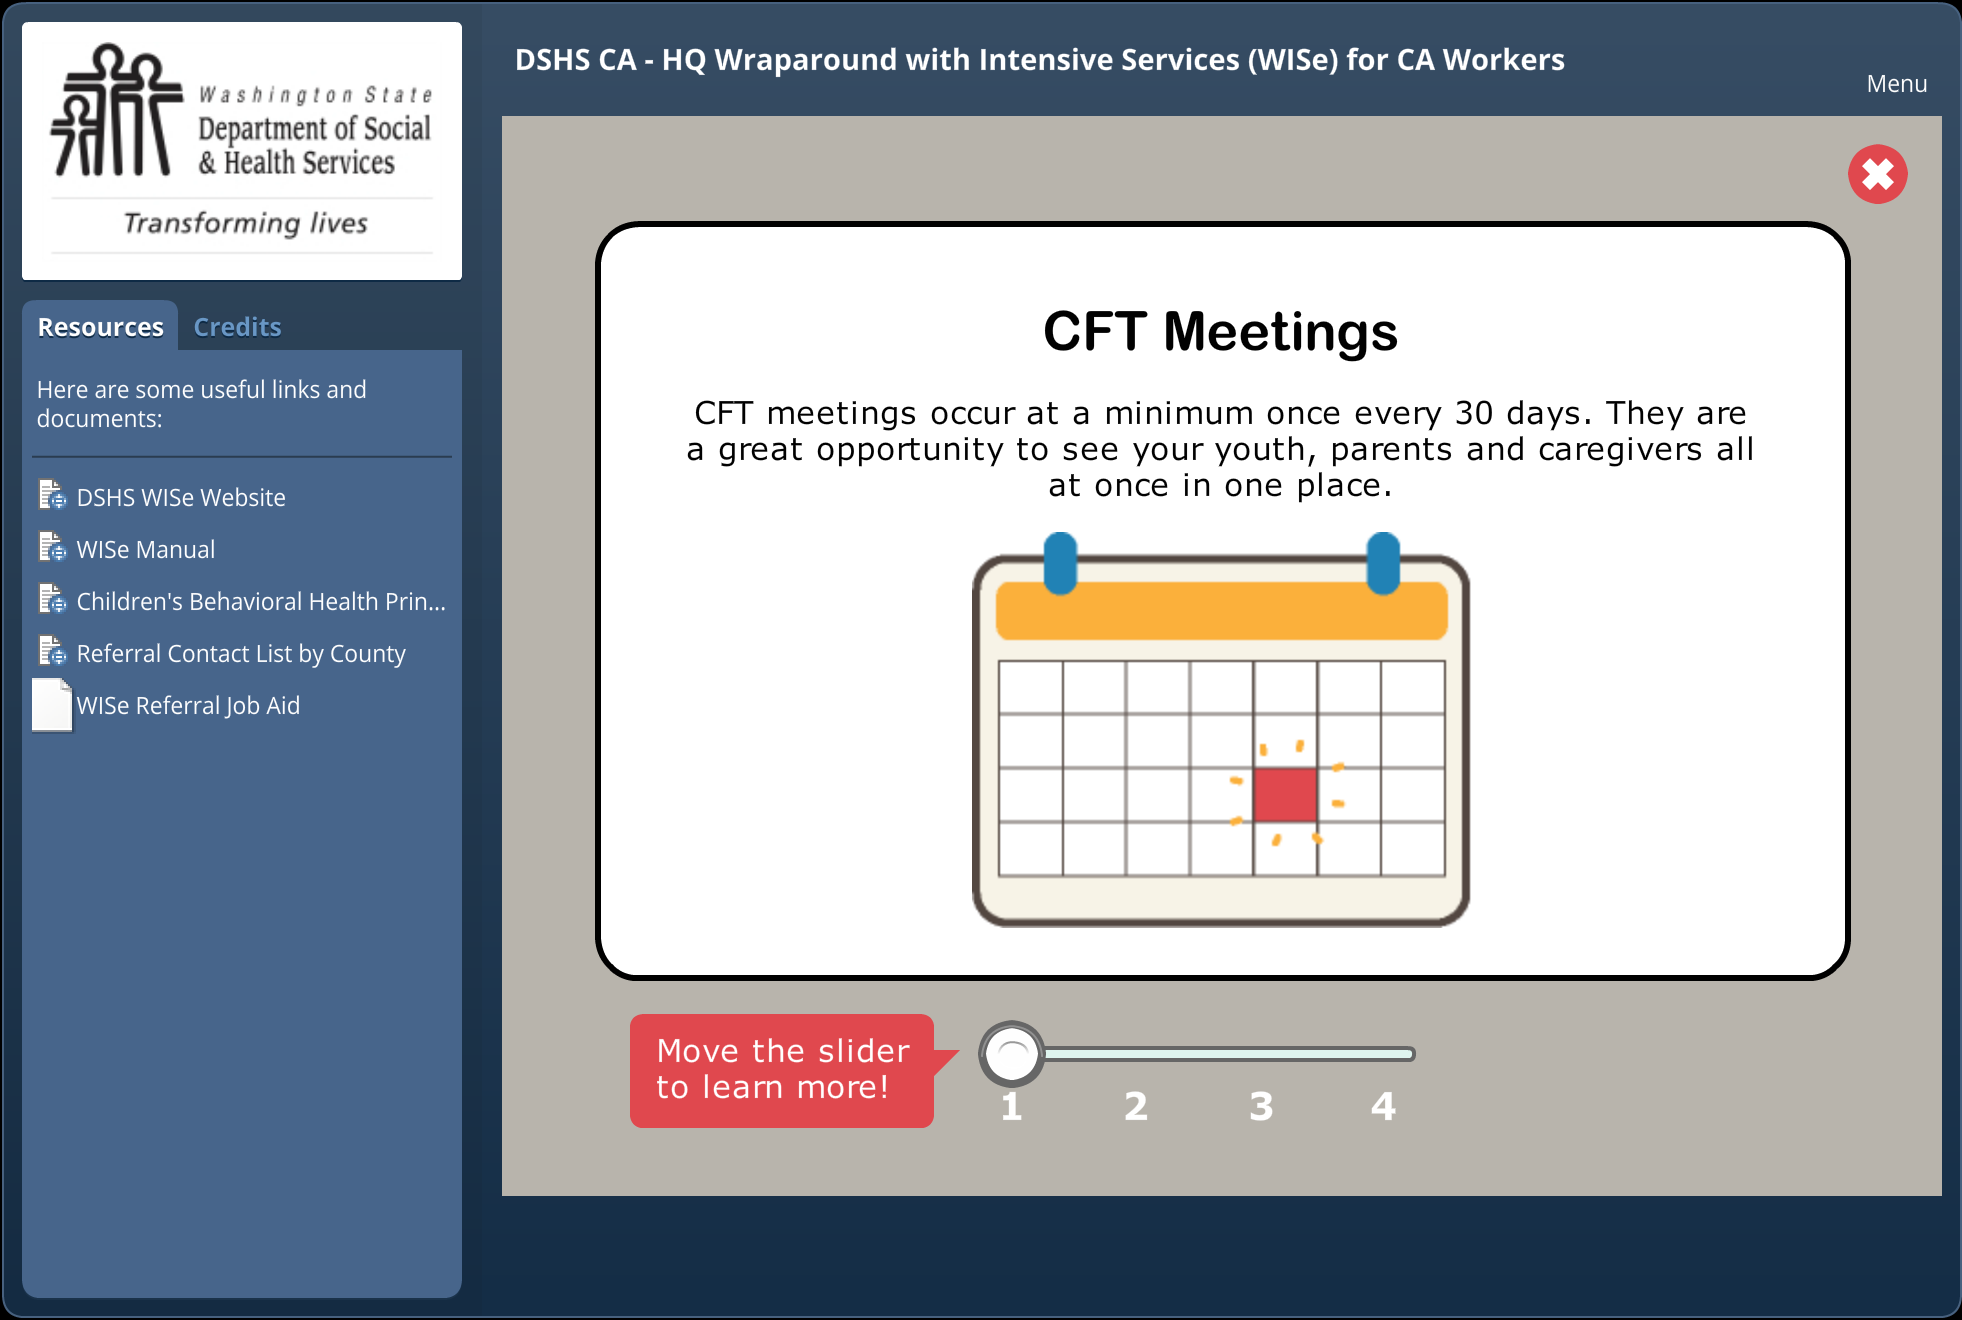 CFT Meetings